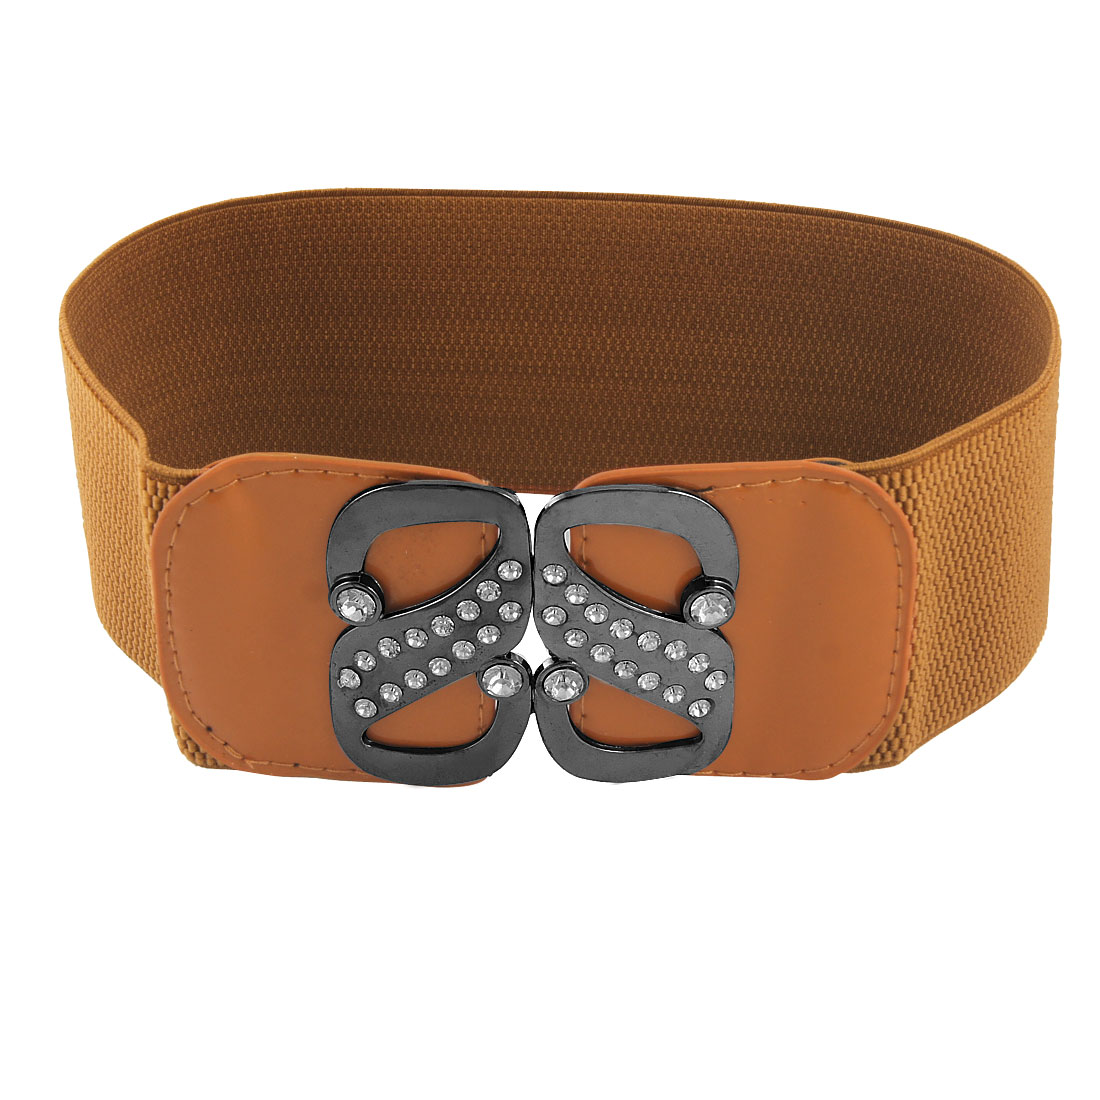 Woman Double S Interlock Buckle Elastic Waist Cinch Belt Brown